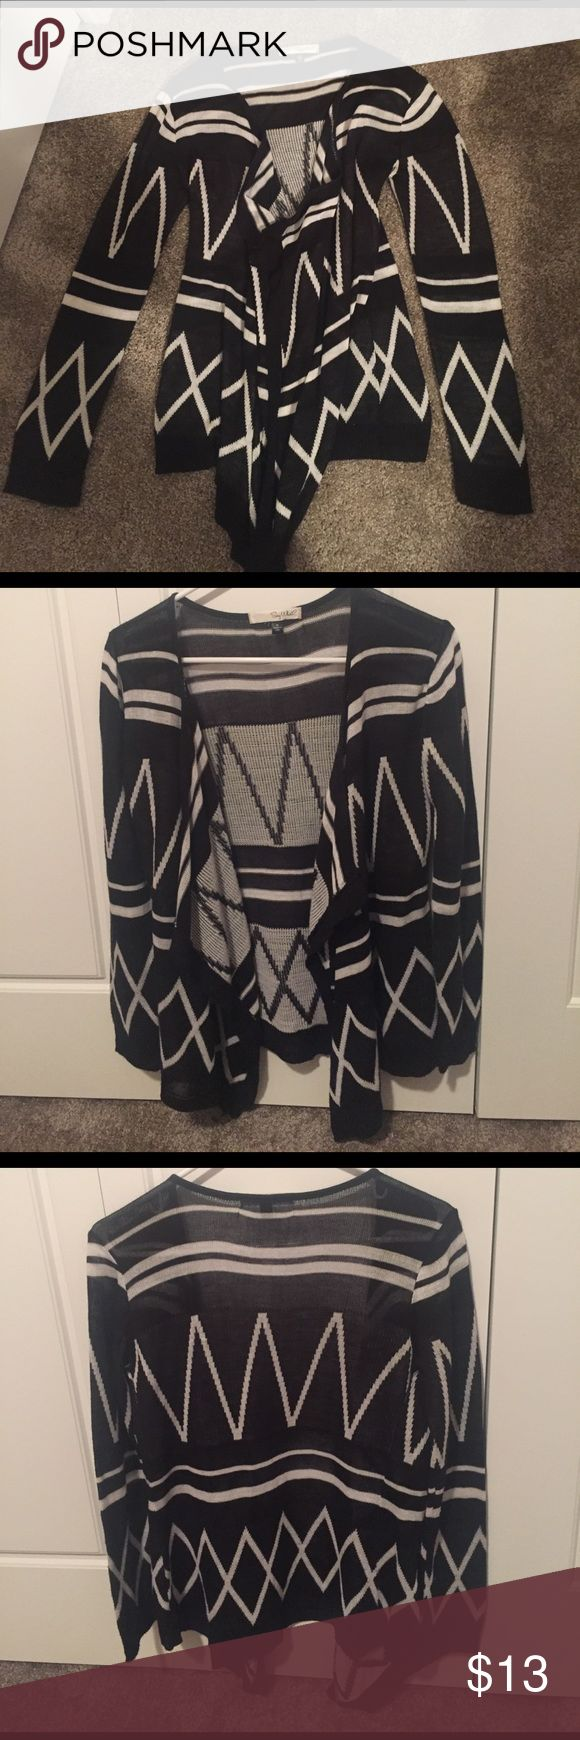 Tribal print cardigan Cute and comfy black and white tribal print cardigan! Size M but fits like a S. In perfect condition! Feel free to make me an offer! Sweaters Cardigans